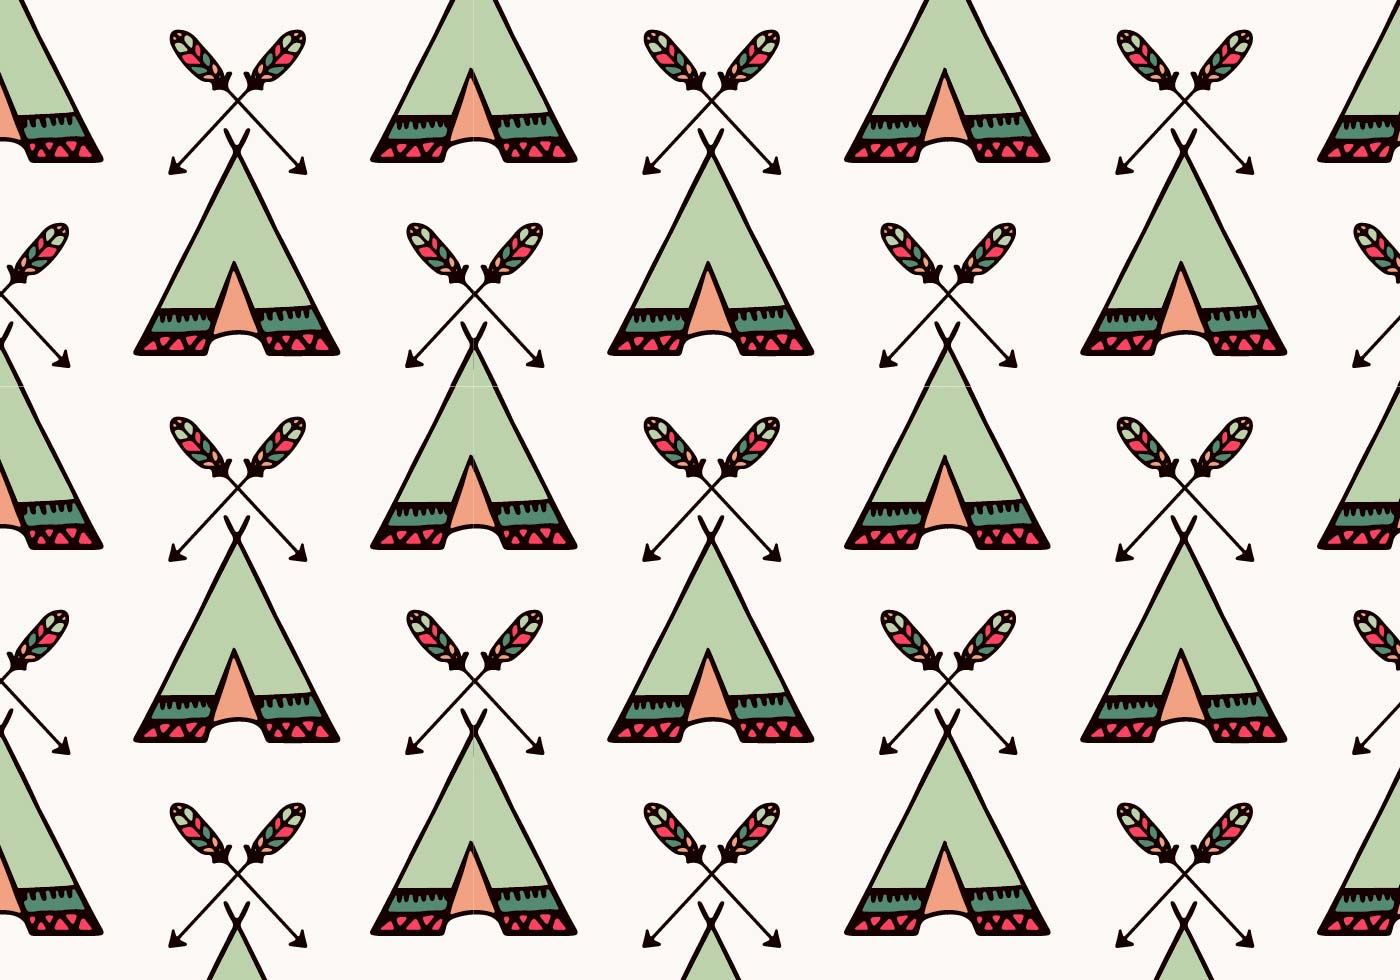 free vector tipi pattern download free vector art stock graphics images. Black Bedroom Furniture Sets. Home Design Ideas